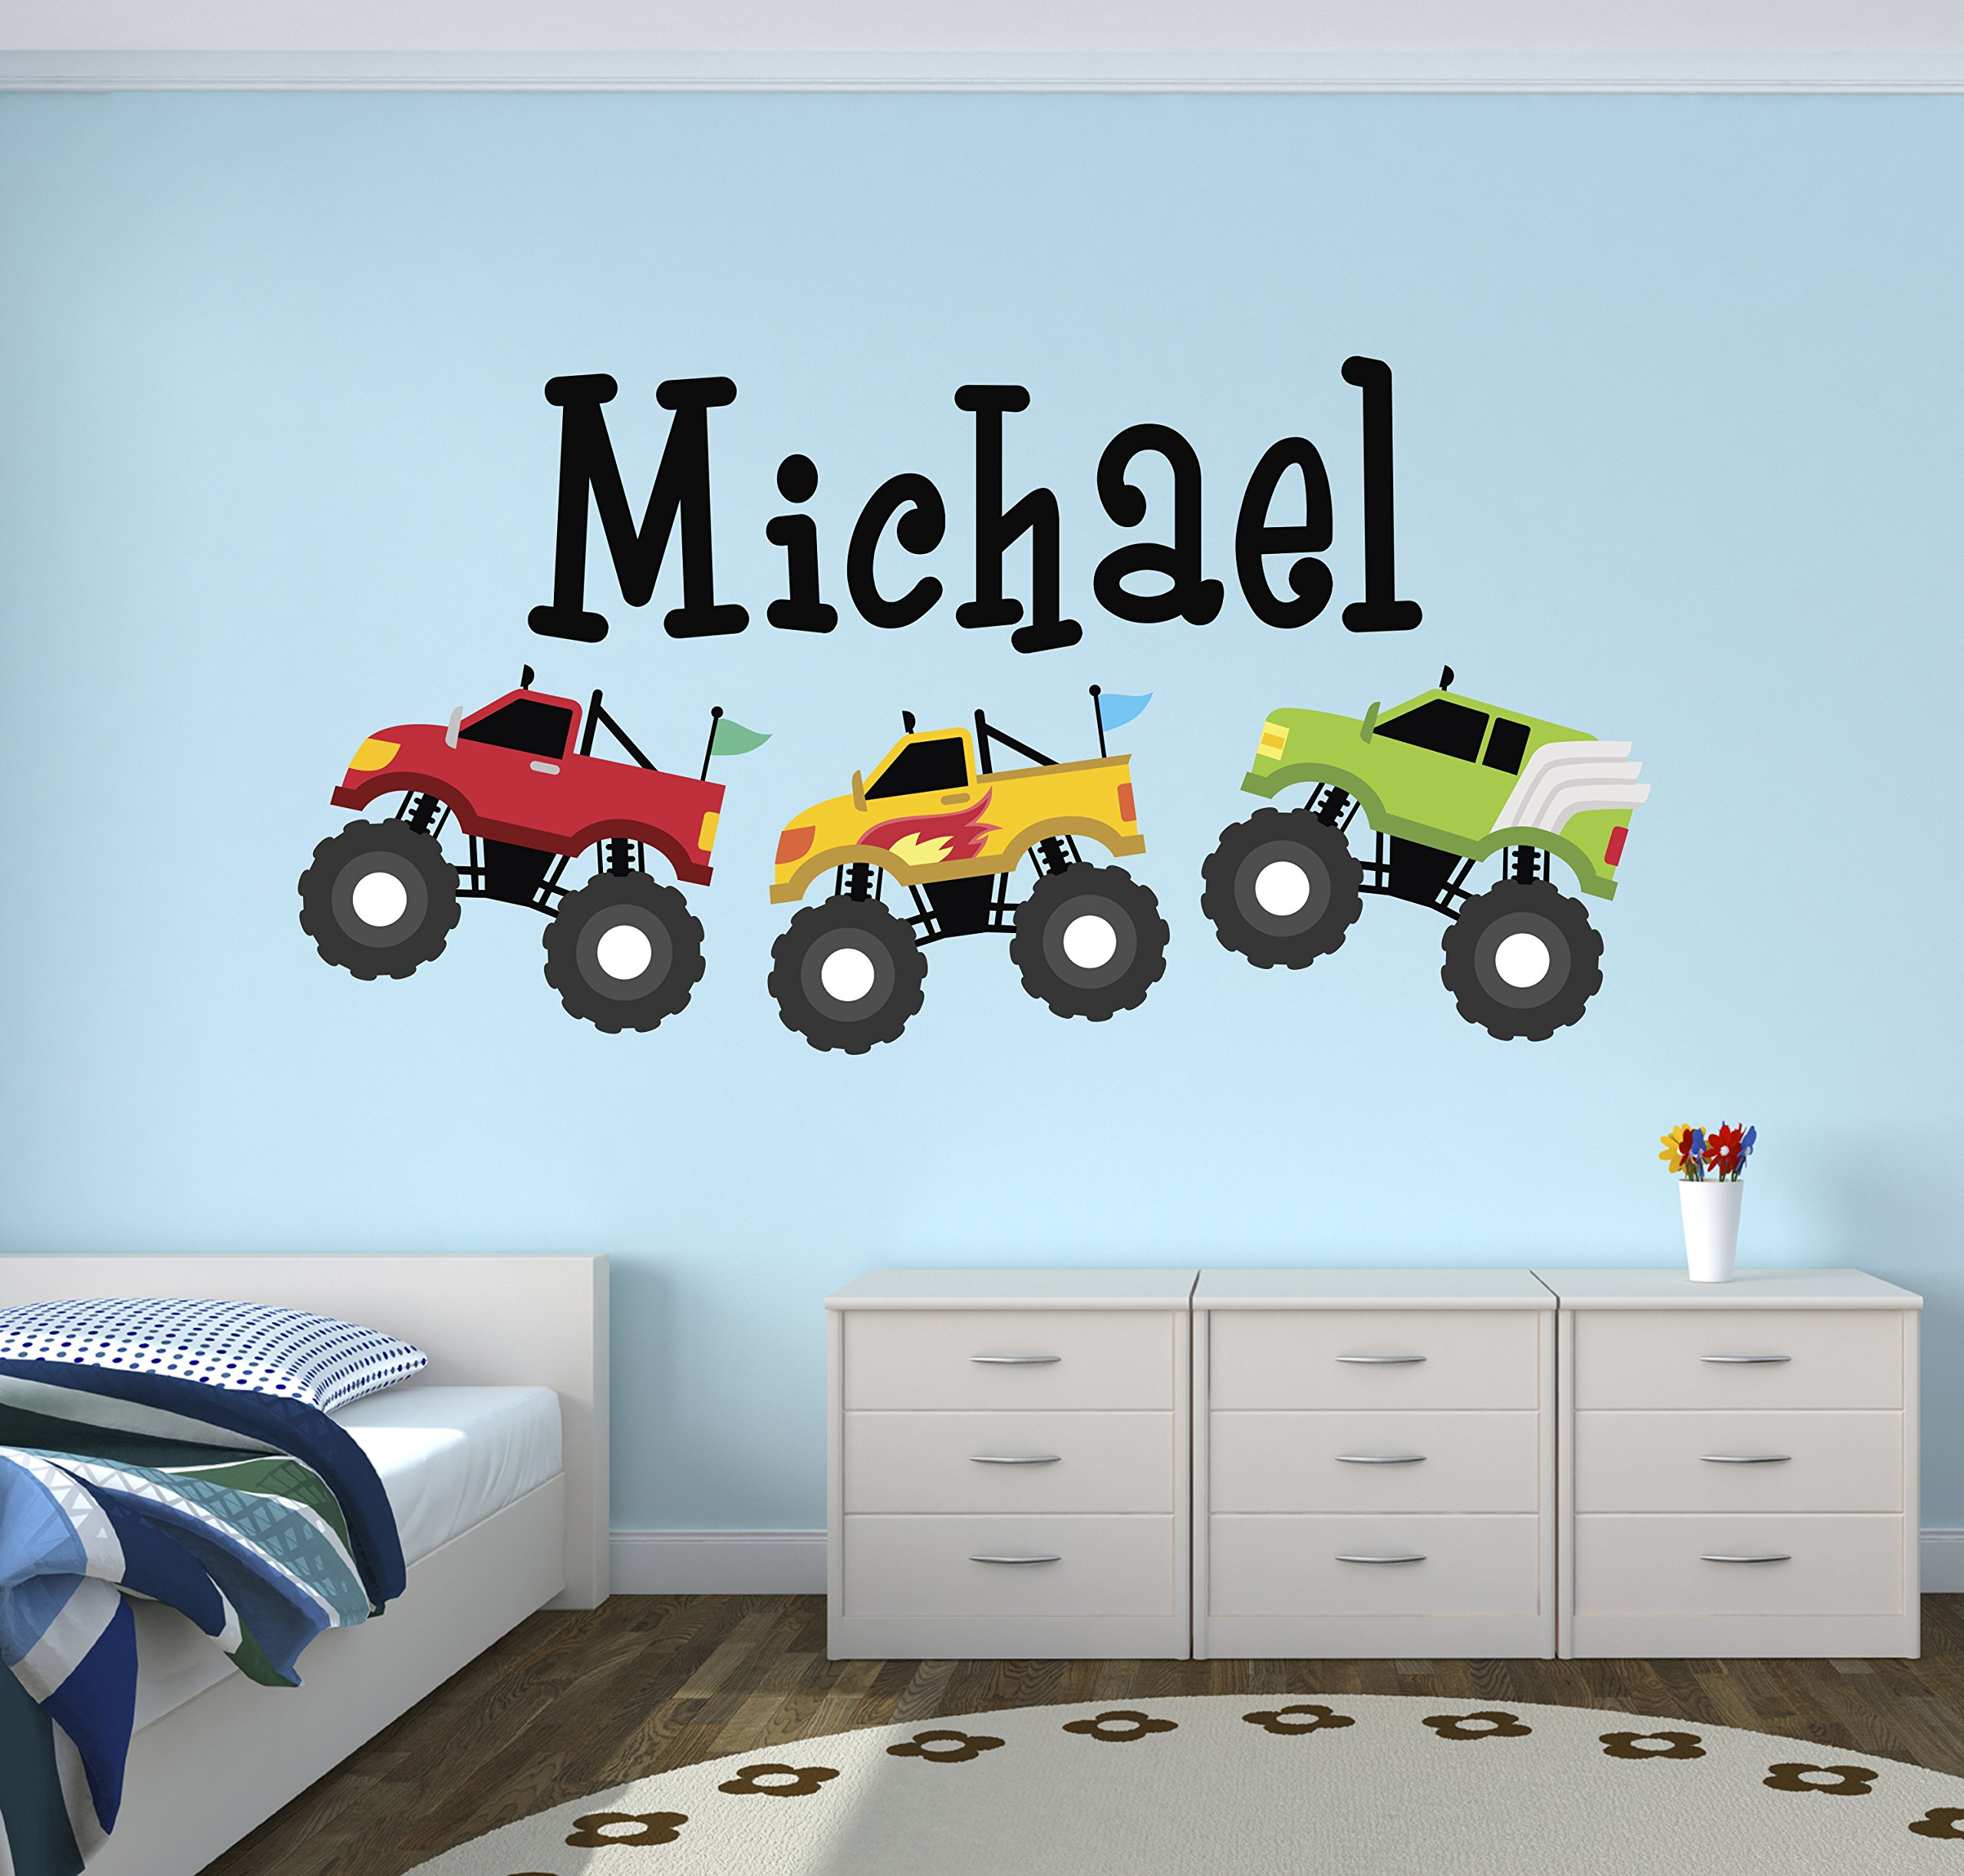 Personalized Trucks Name Wall Decal - Baby Boy Room Decor - Nursery Wall Decals - Trucks Art Vinyl Sticker